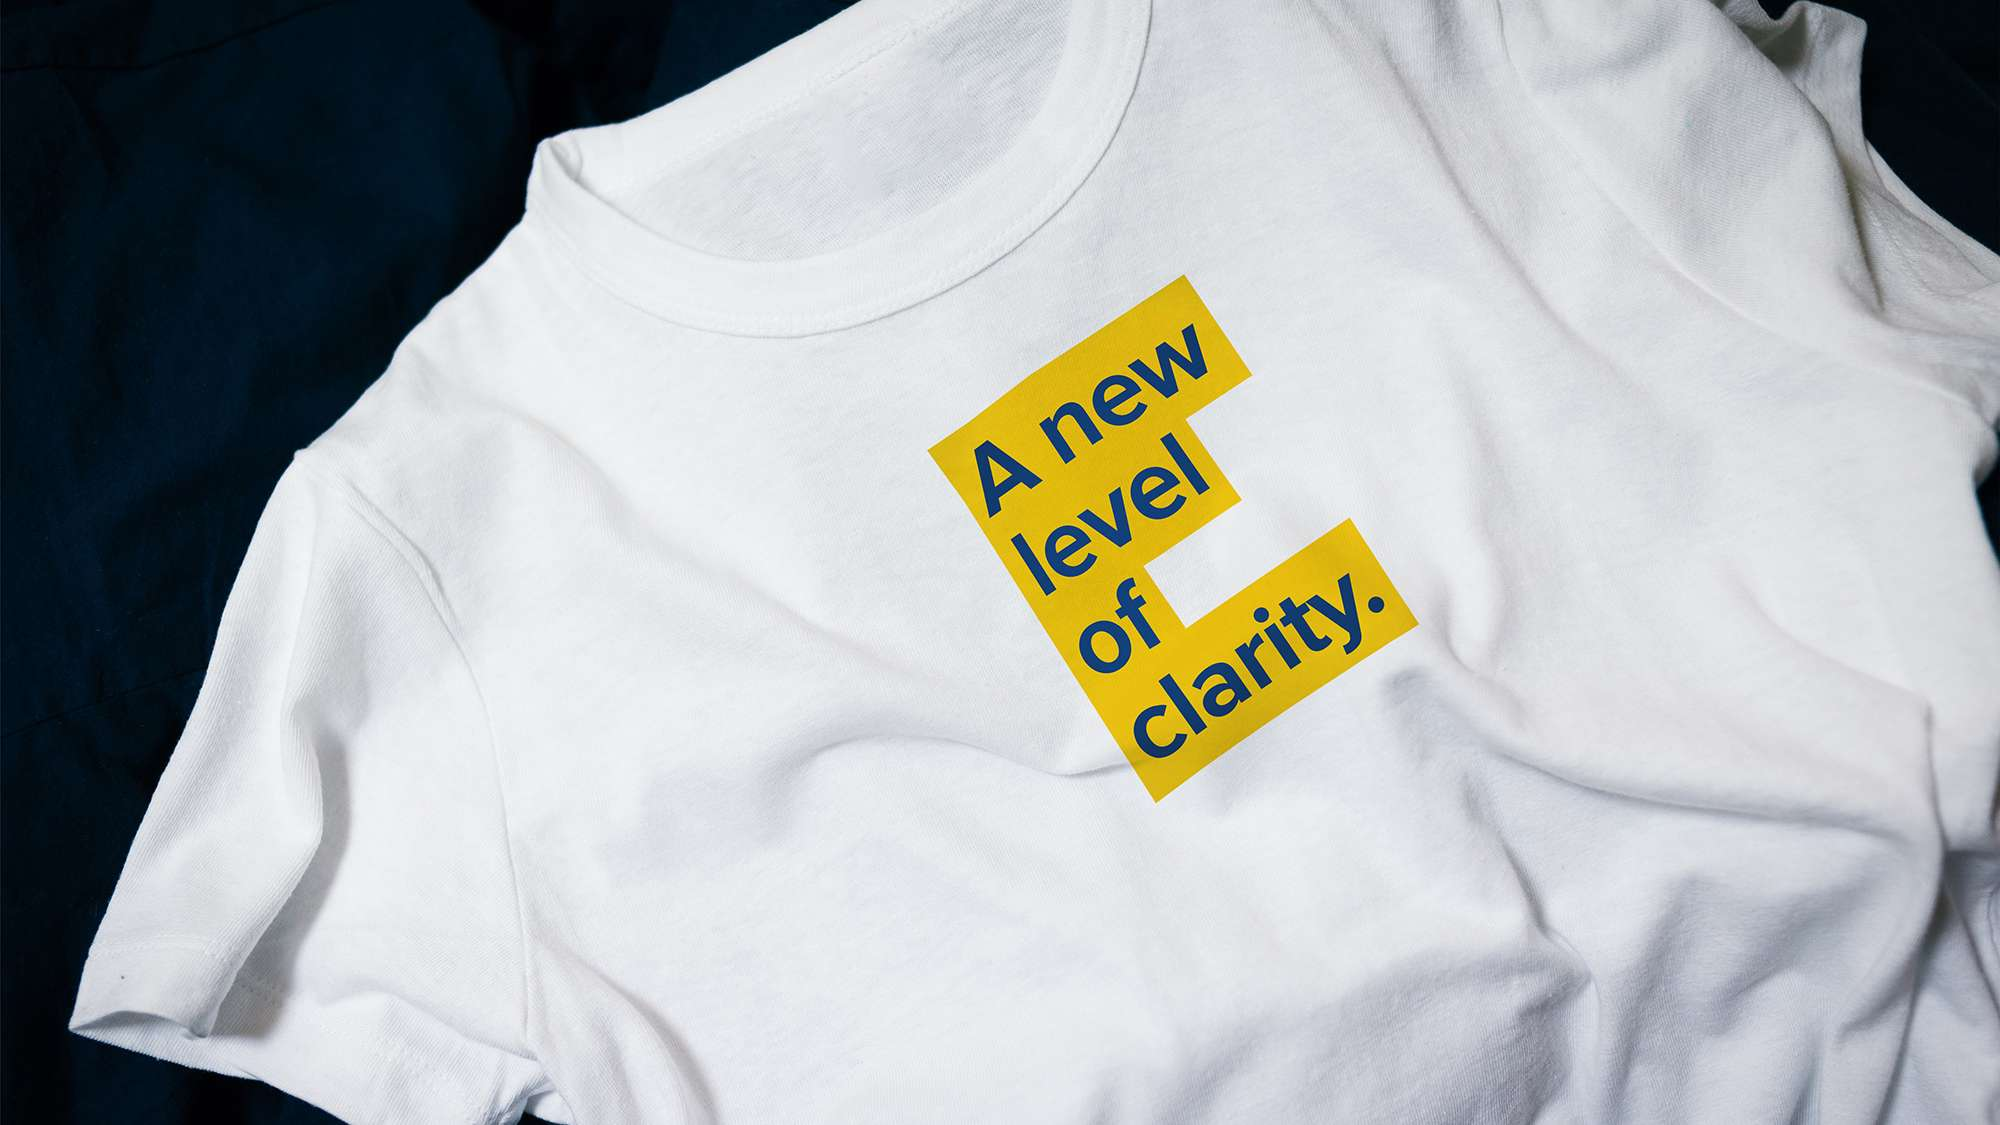 A new level of clarity, text on a tee shirt.